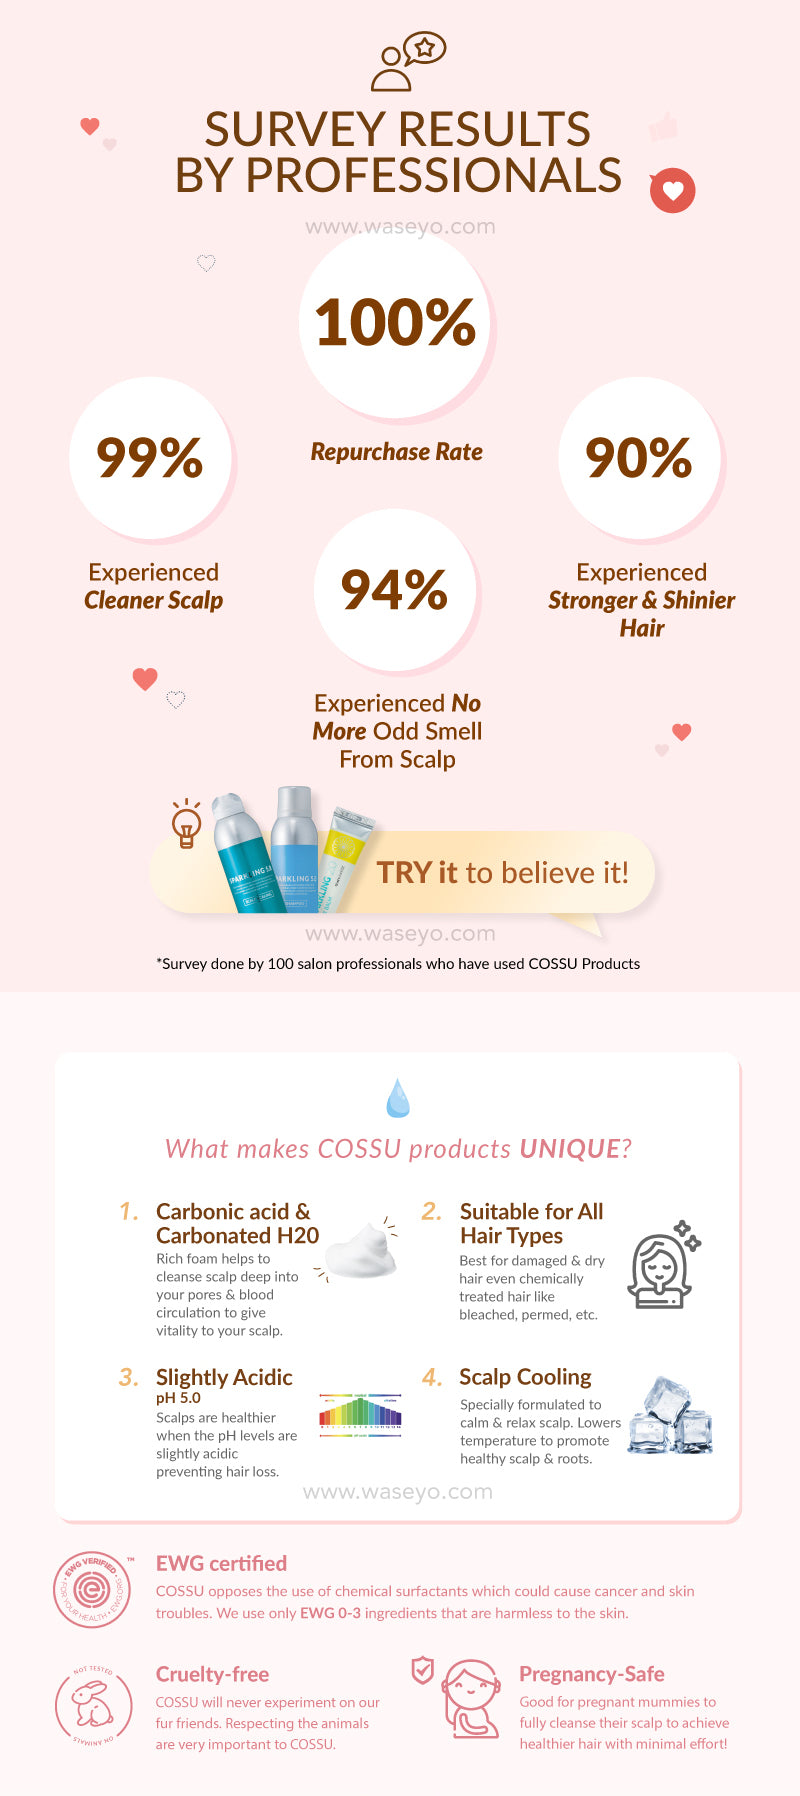 Here is a survey done by 100 Professional Hair stylist and they feedback after trying cossu! 100% repurchase rate after trying an almost all experience the difference after using Cossu Hair products. Cossu is suitable for all hair types. It is slightly acidic to maintain healthy scalp pH. The scalp cooling not only leaves your hair feeling refresh, but also reduces hair loss and calms your sensitive scalp!